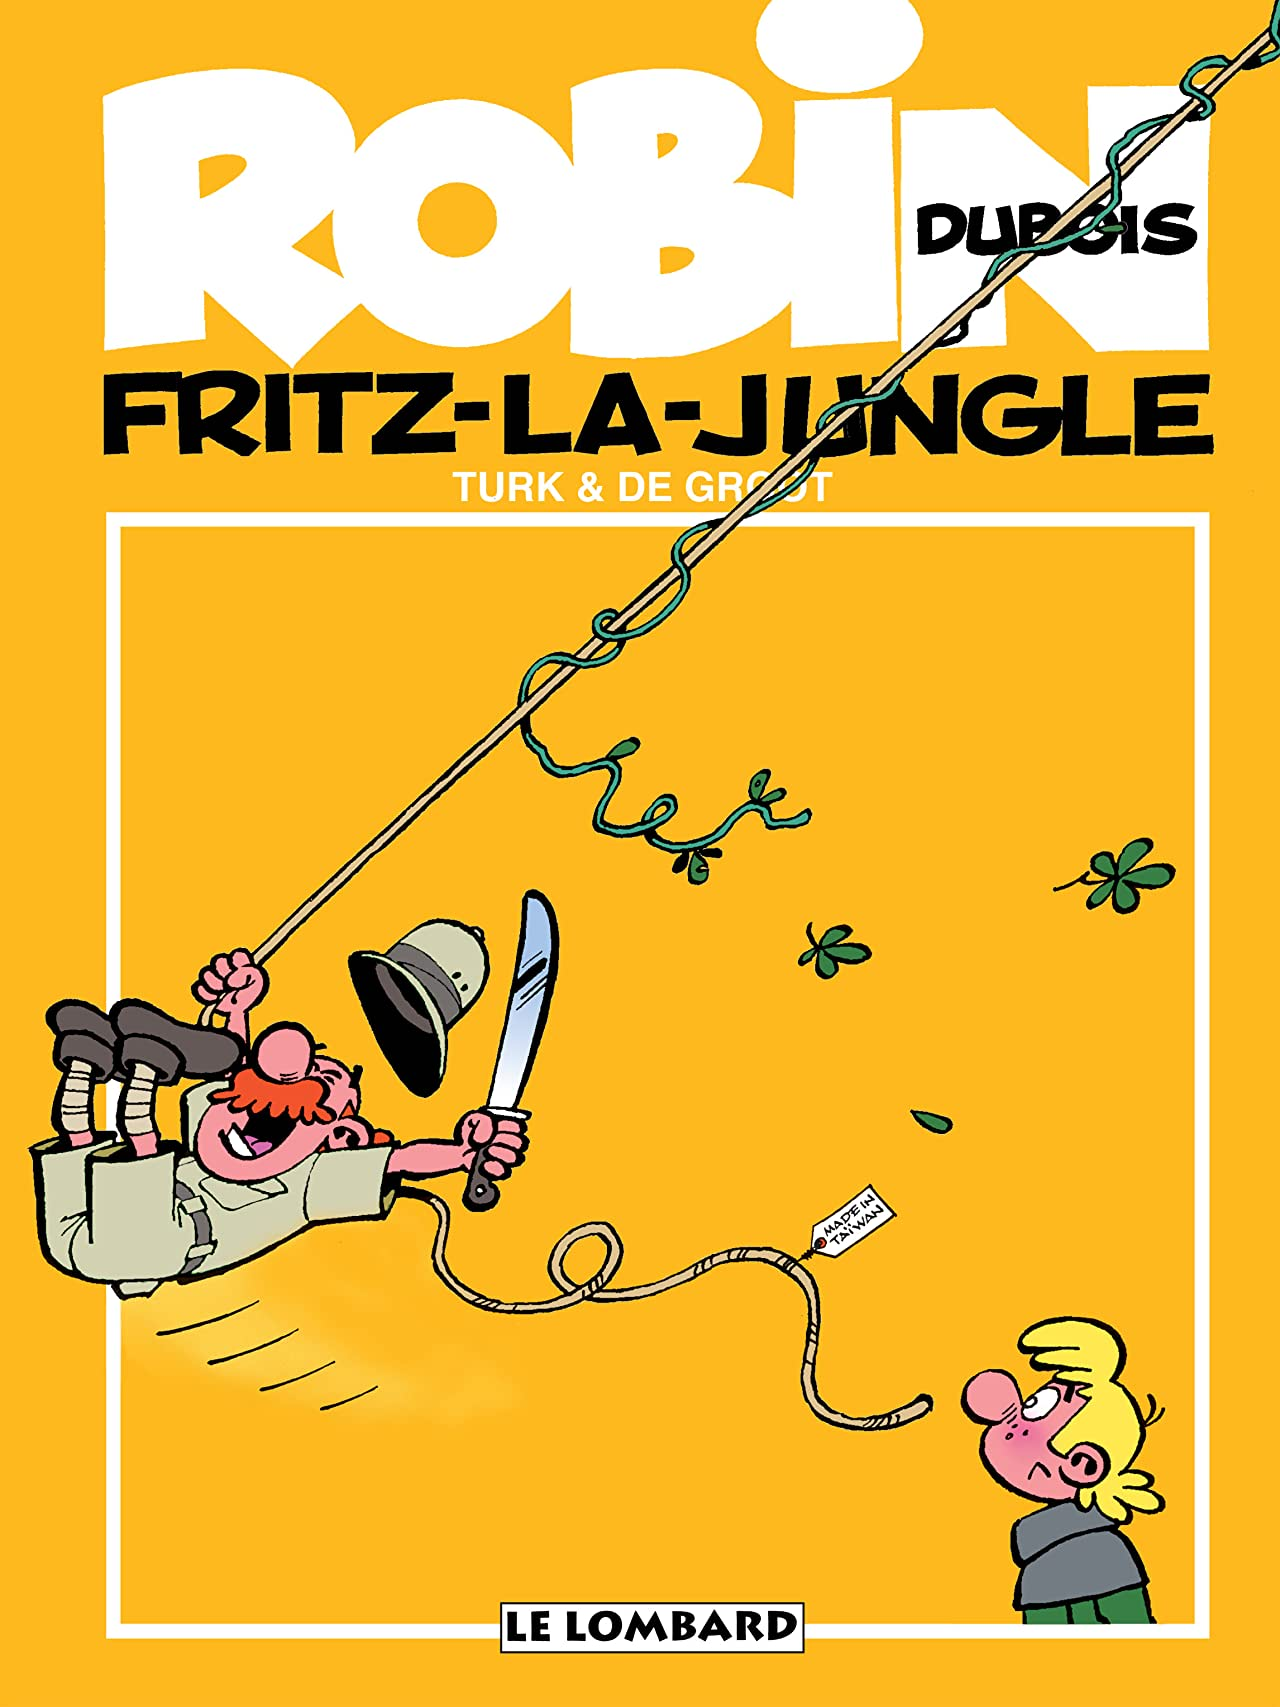 Robin Dubois Vol. 19: Fritz-la-jungle